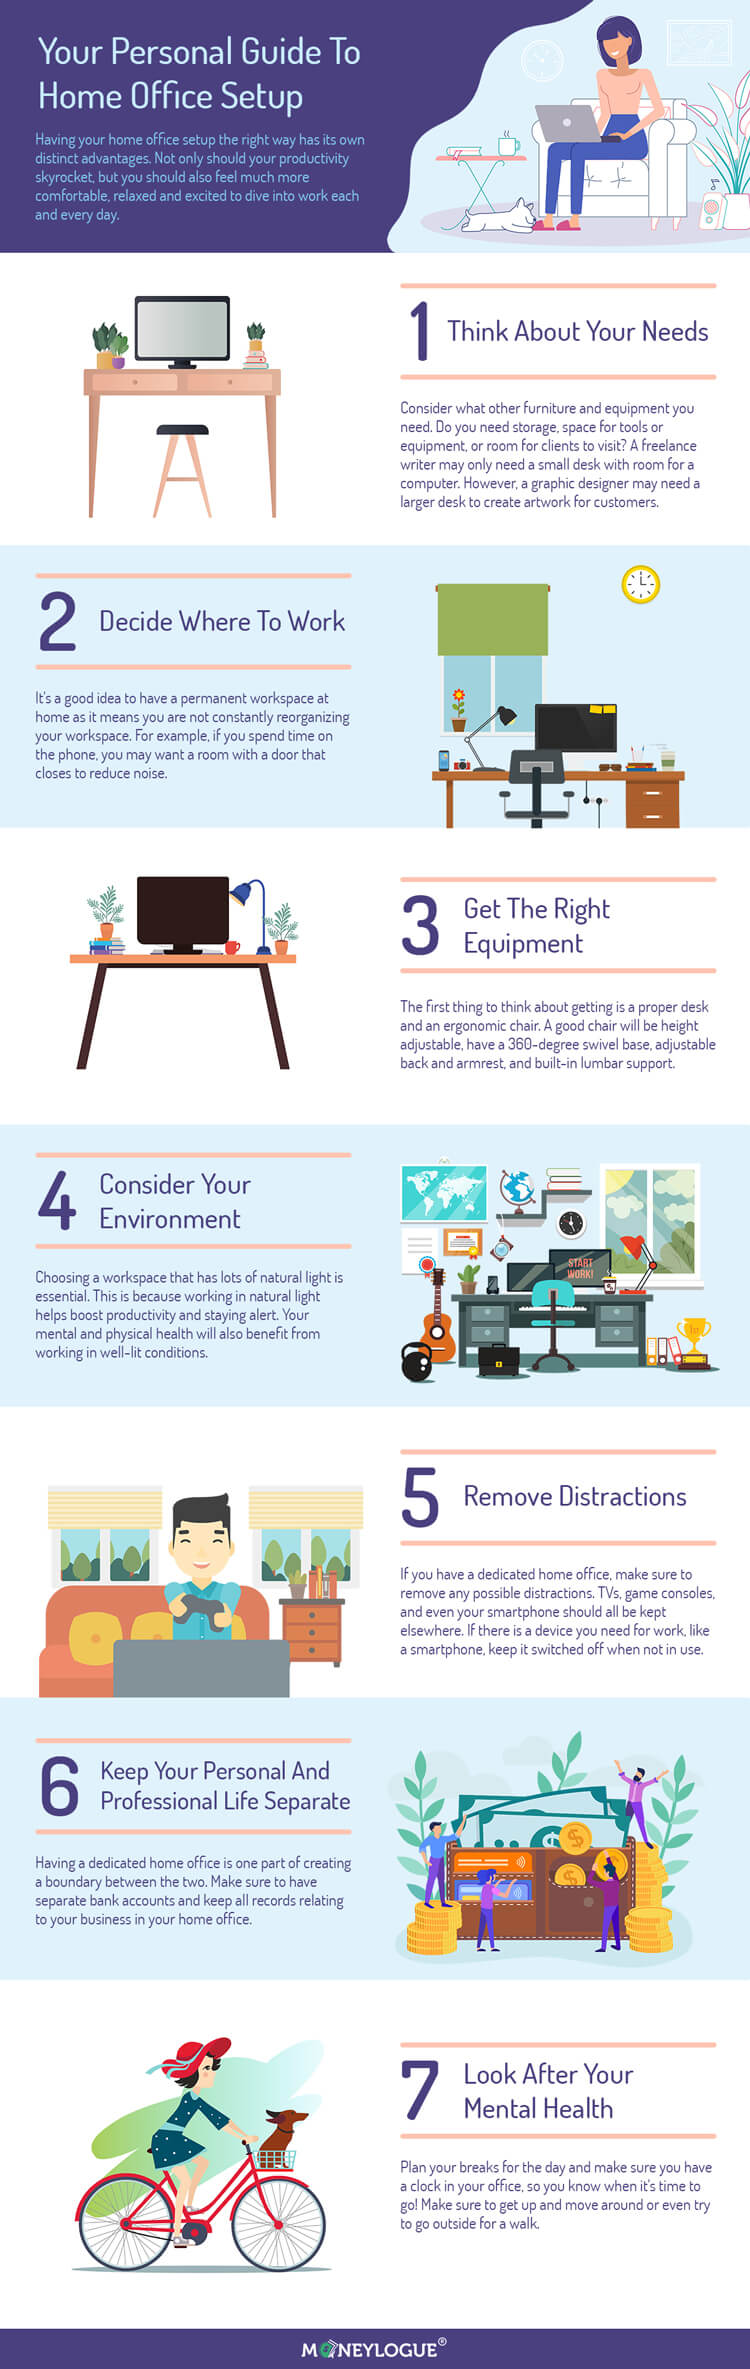 Home Office Setup Infographic